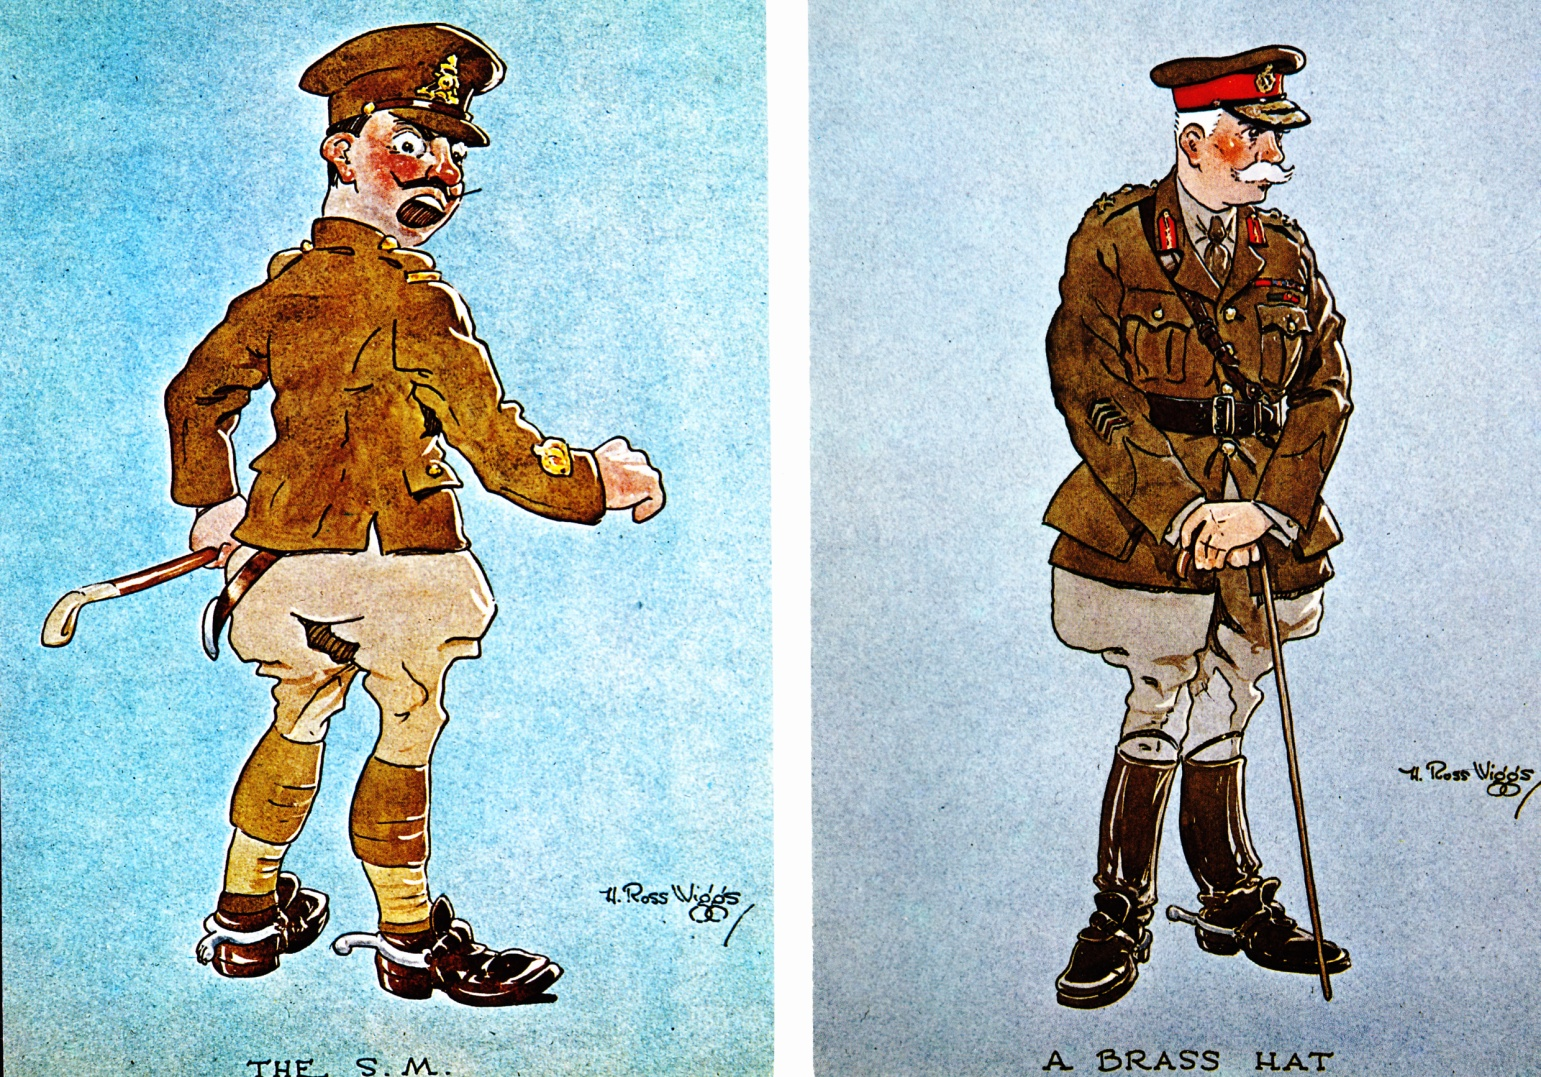 C:\Users\Robert\Documents\CARTOONING ILLUSTRATION ANIMATION\IMAGE BY CARTOONIST\W\WIGGS H. R.  Postcards Cdn War Museum 2 & 4.jpg